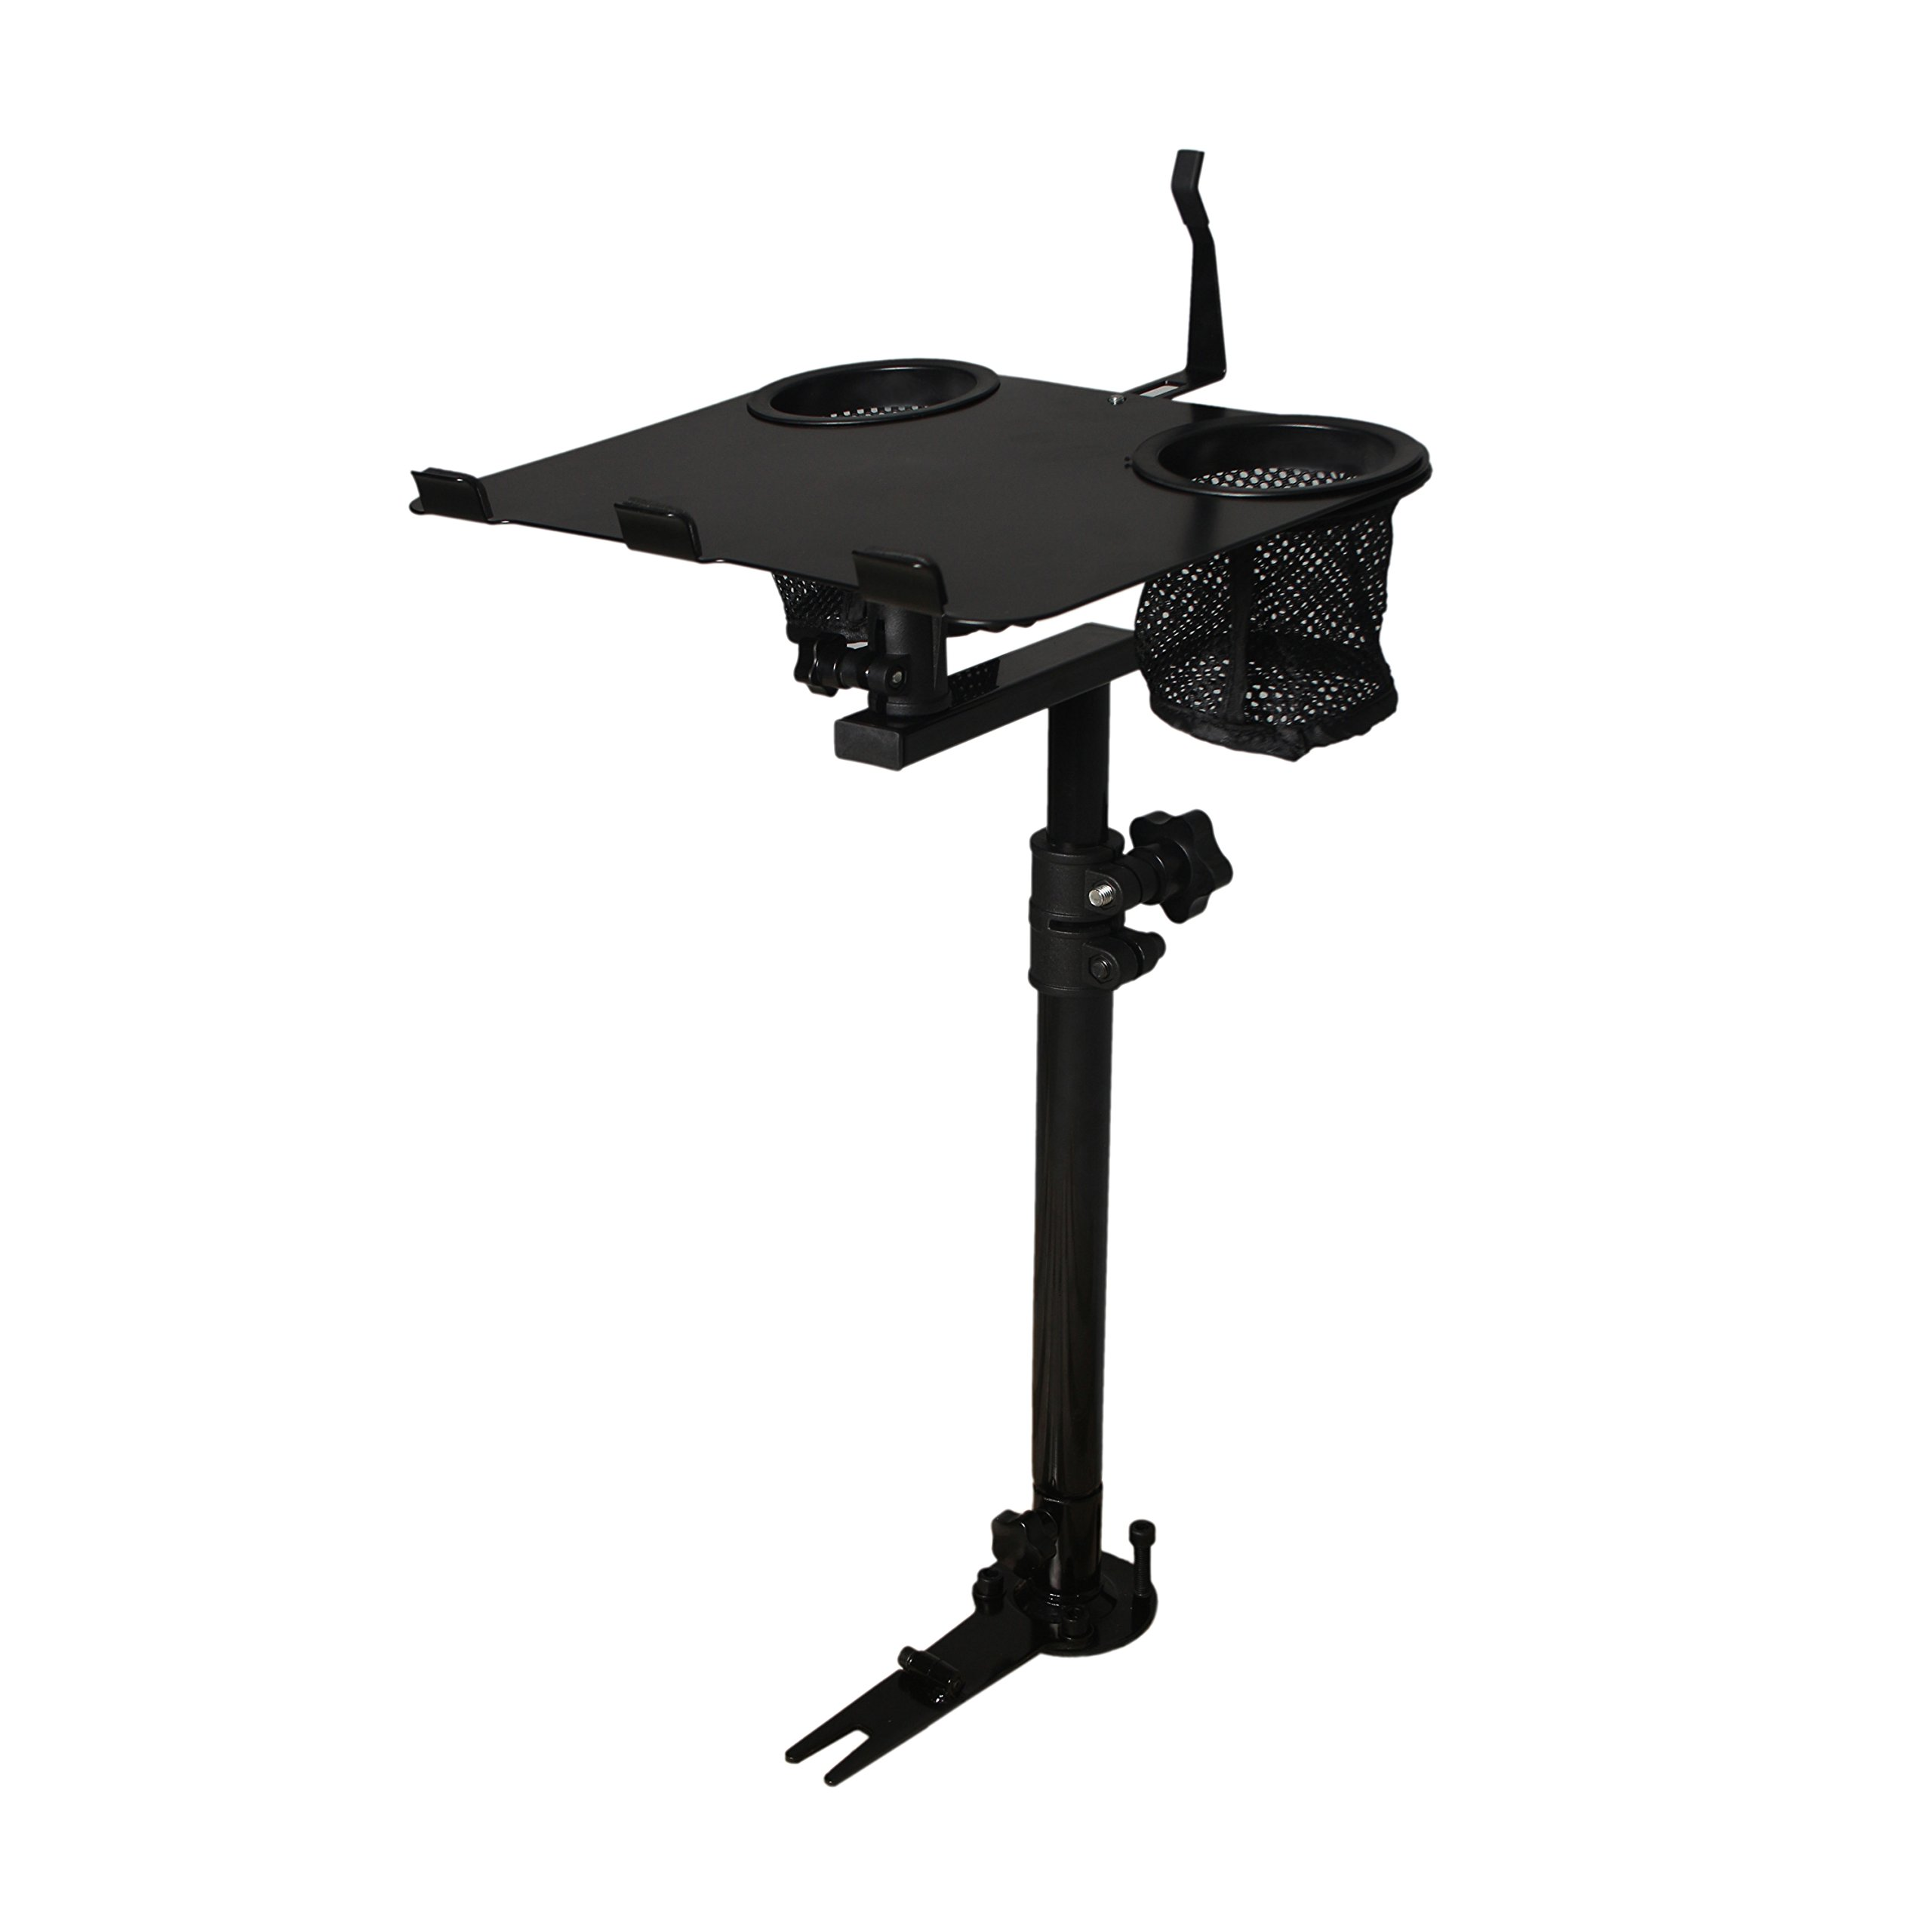 AA-Products K005-B1 Car Laptop Mount Truck Vehicle Notebook Stand Holder With Non-Drilling Bracket